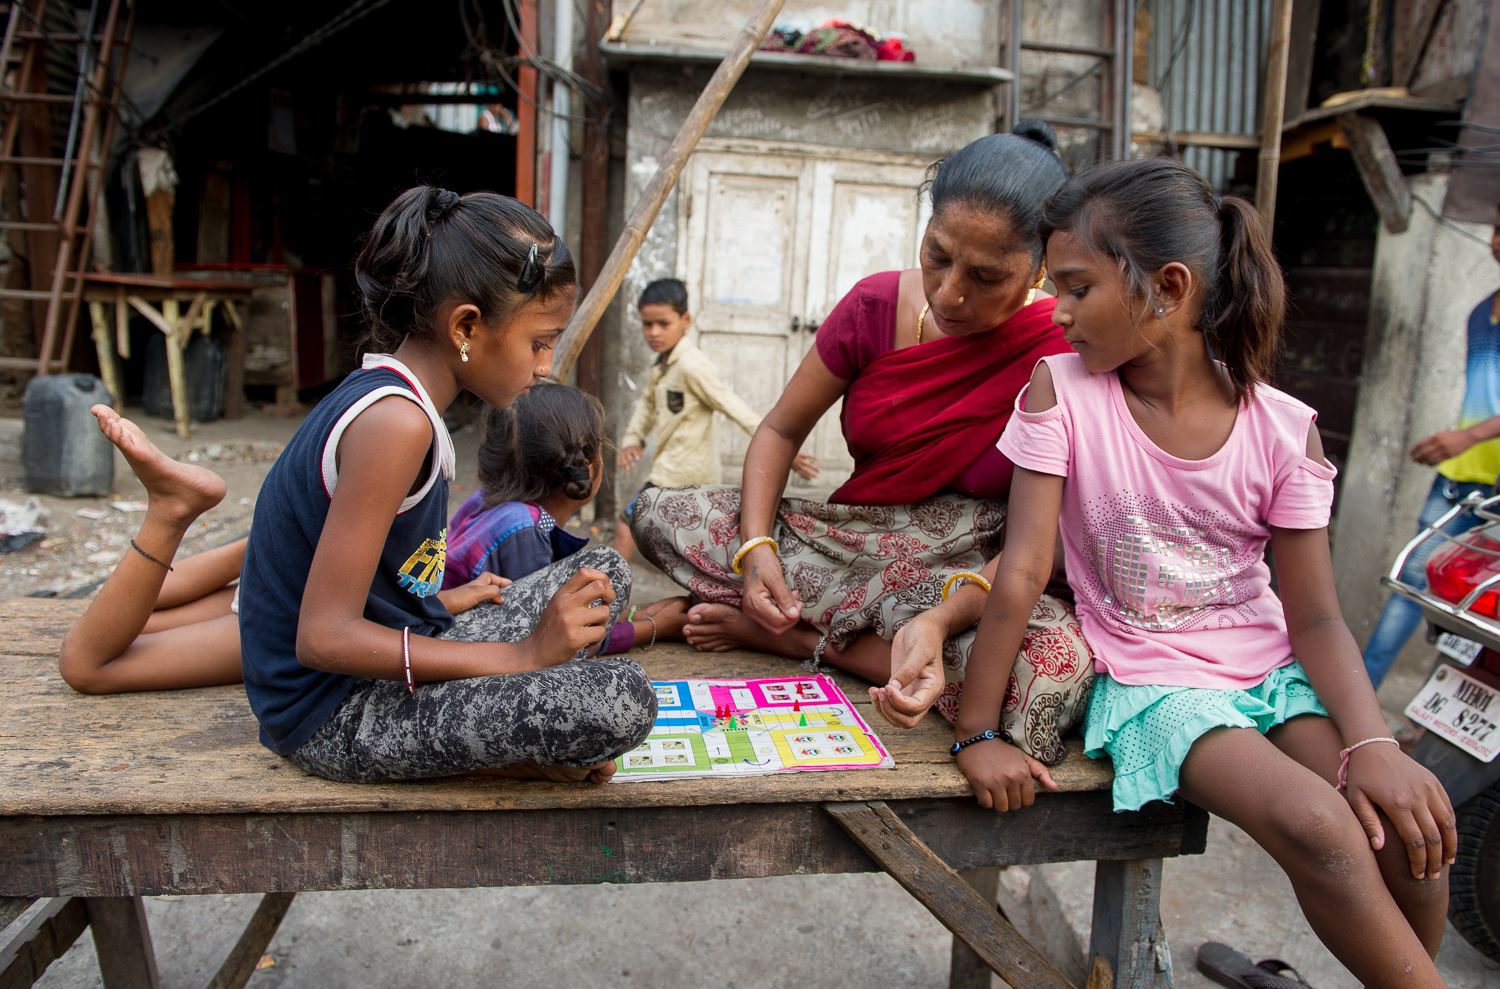 Playing board games, Dhobi ghat, Mahalaxmi, Mumbai, 2019